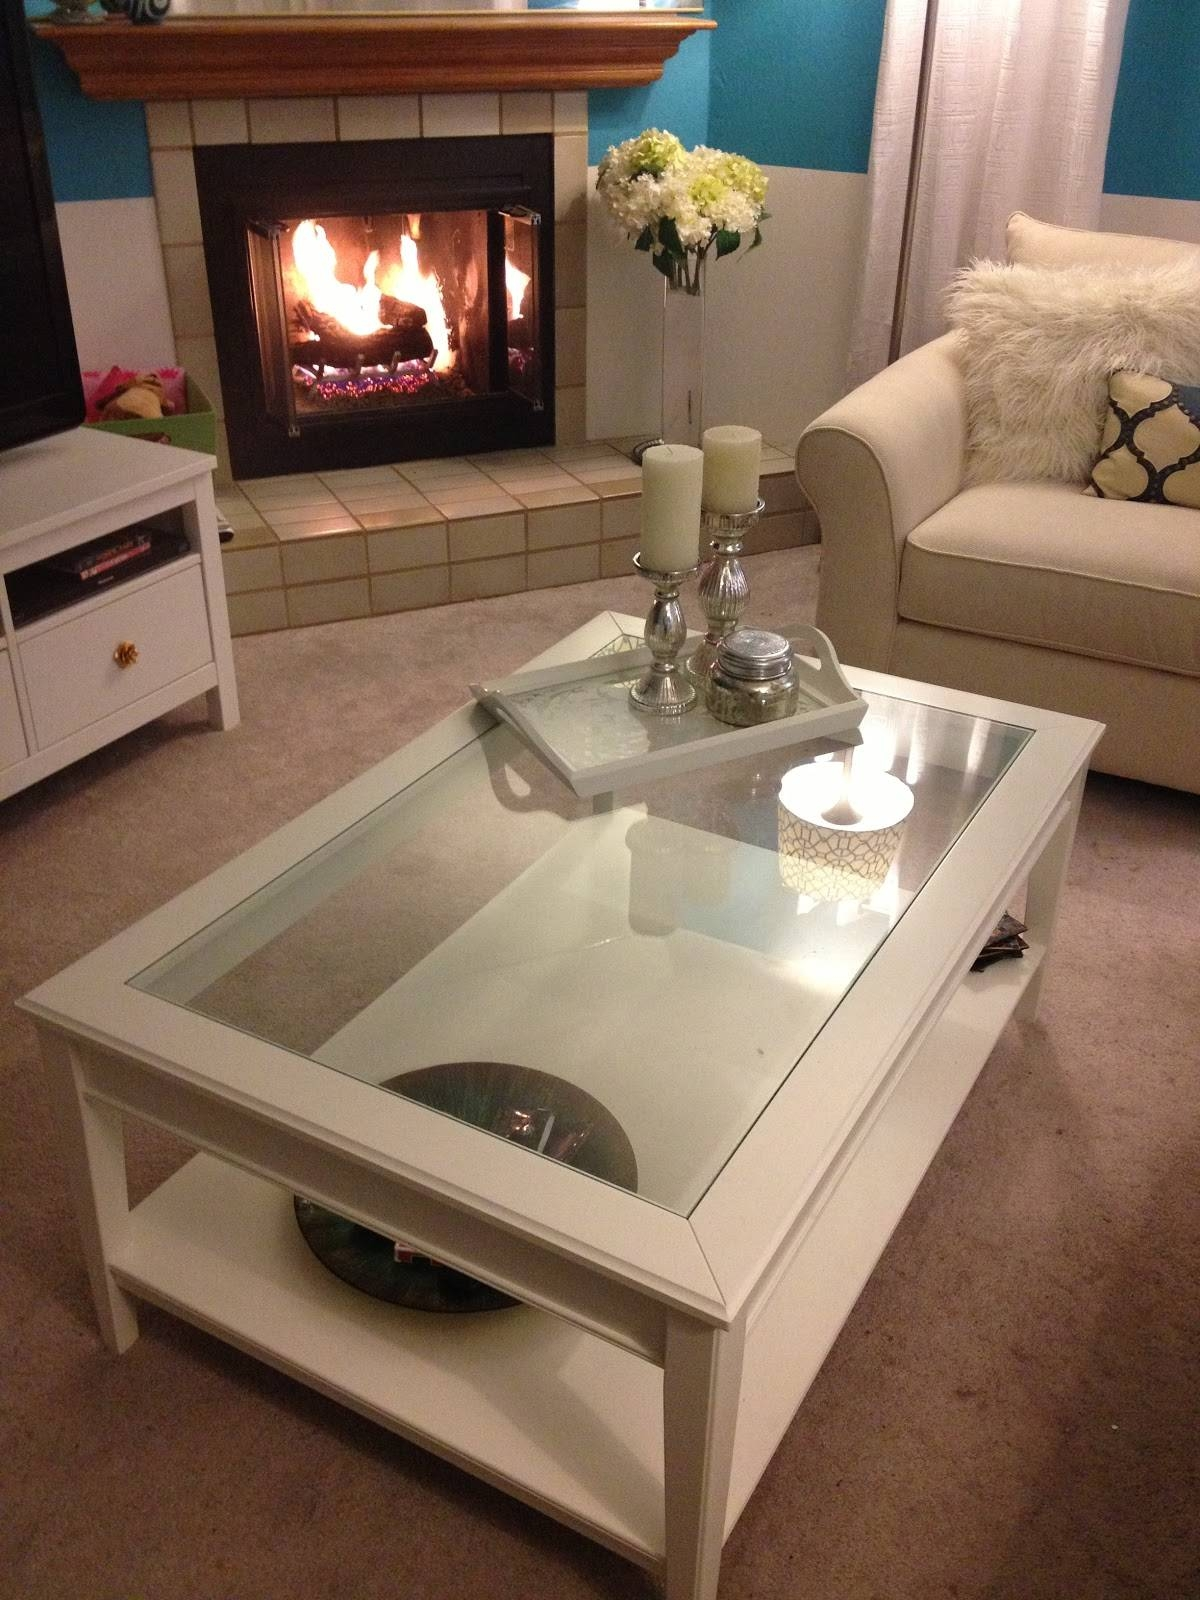 Mirrored Tray For Coffee Table | Idi Design inside Coffee Tables Mirrored (Image 23 of 30)